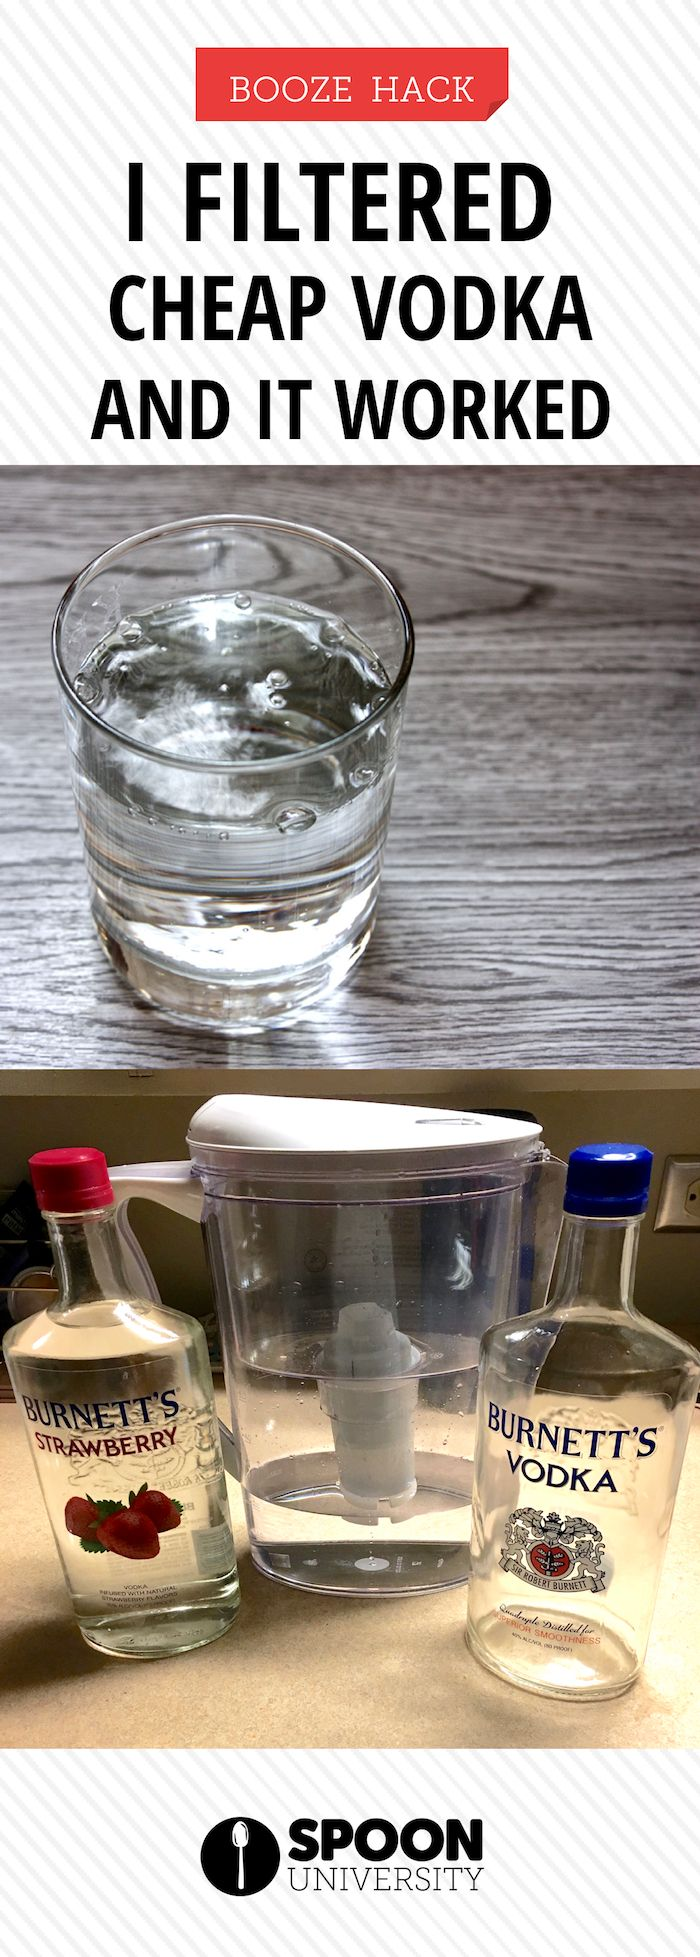 You won't believe this brita filter hack actually turns your cheap vodka into top shelf quality!